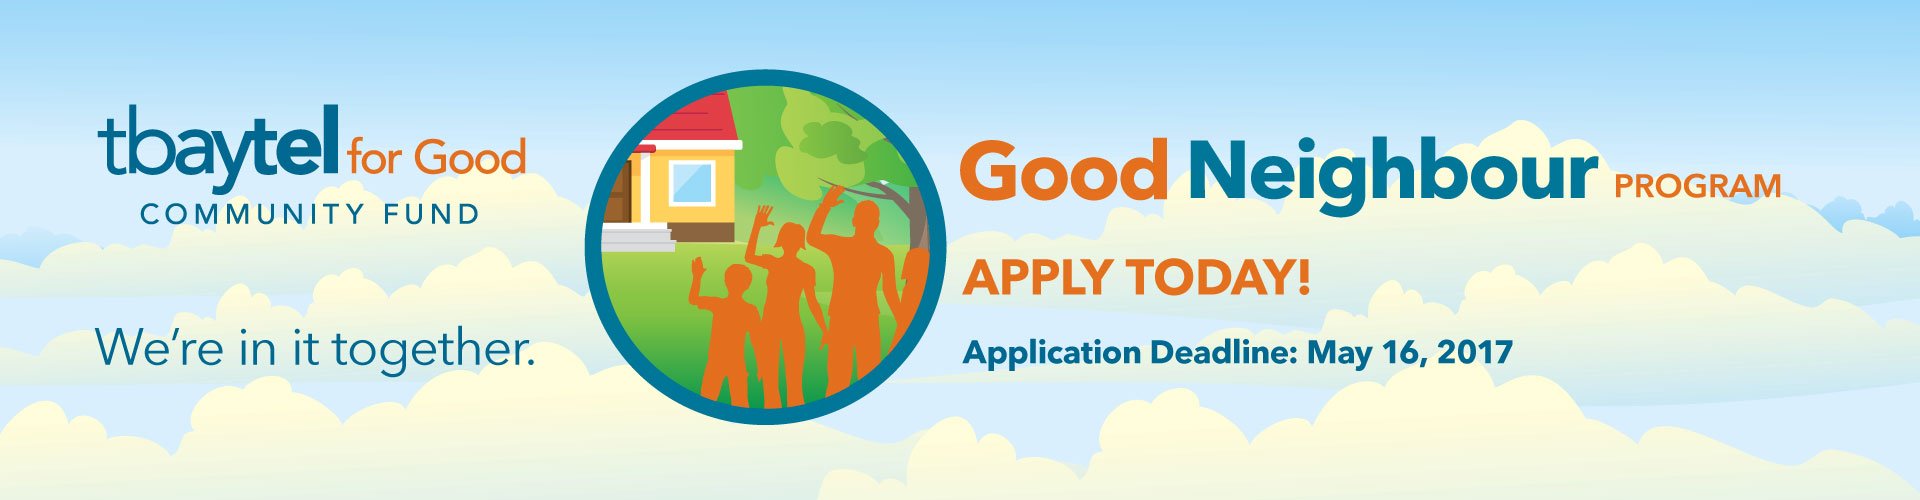 Good Neighbour Program Banner. Apply Today. Application Deadline May 16 2017